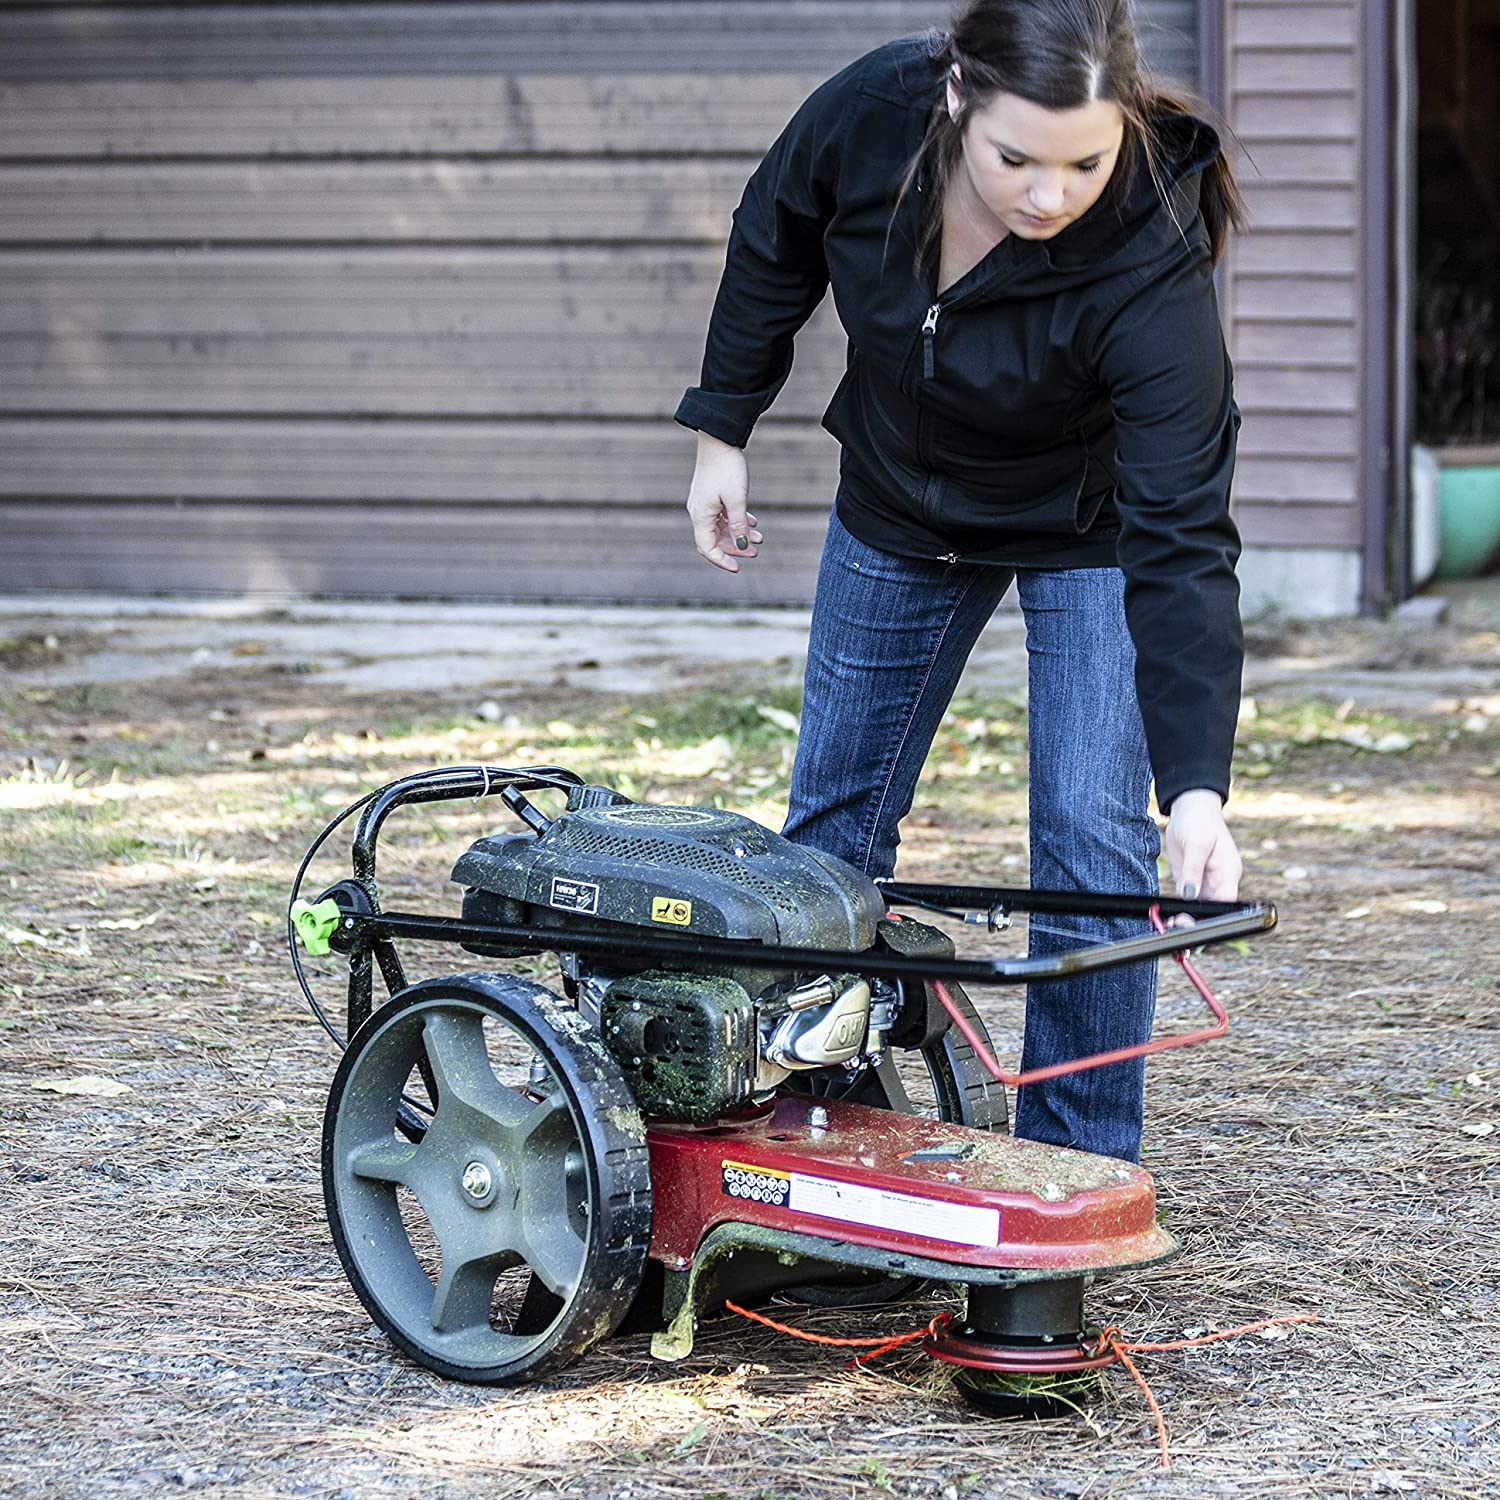 Best Mower For 5 Acres EARTHQUAKE 28463 M205 150cc 4-Cycle Viper Engine